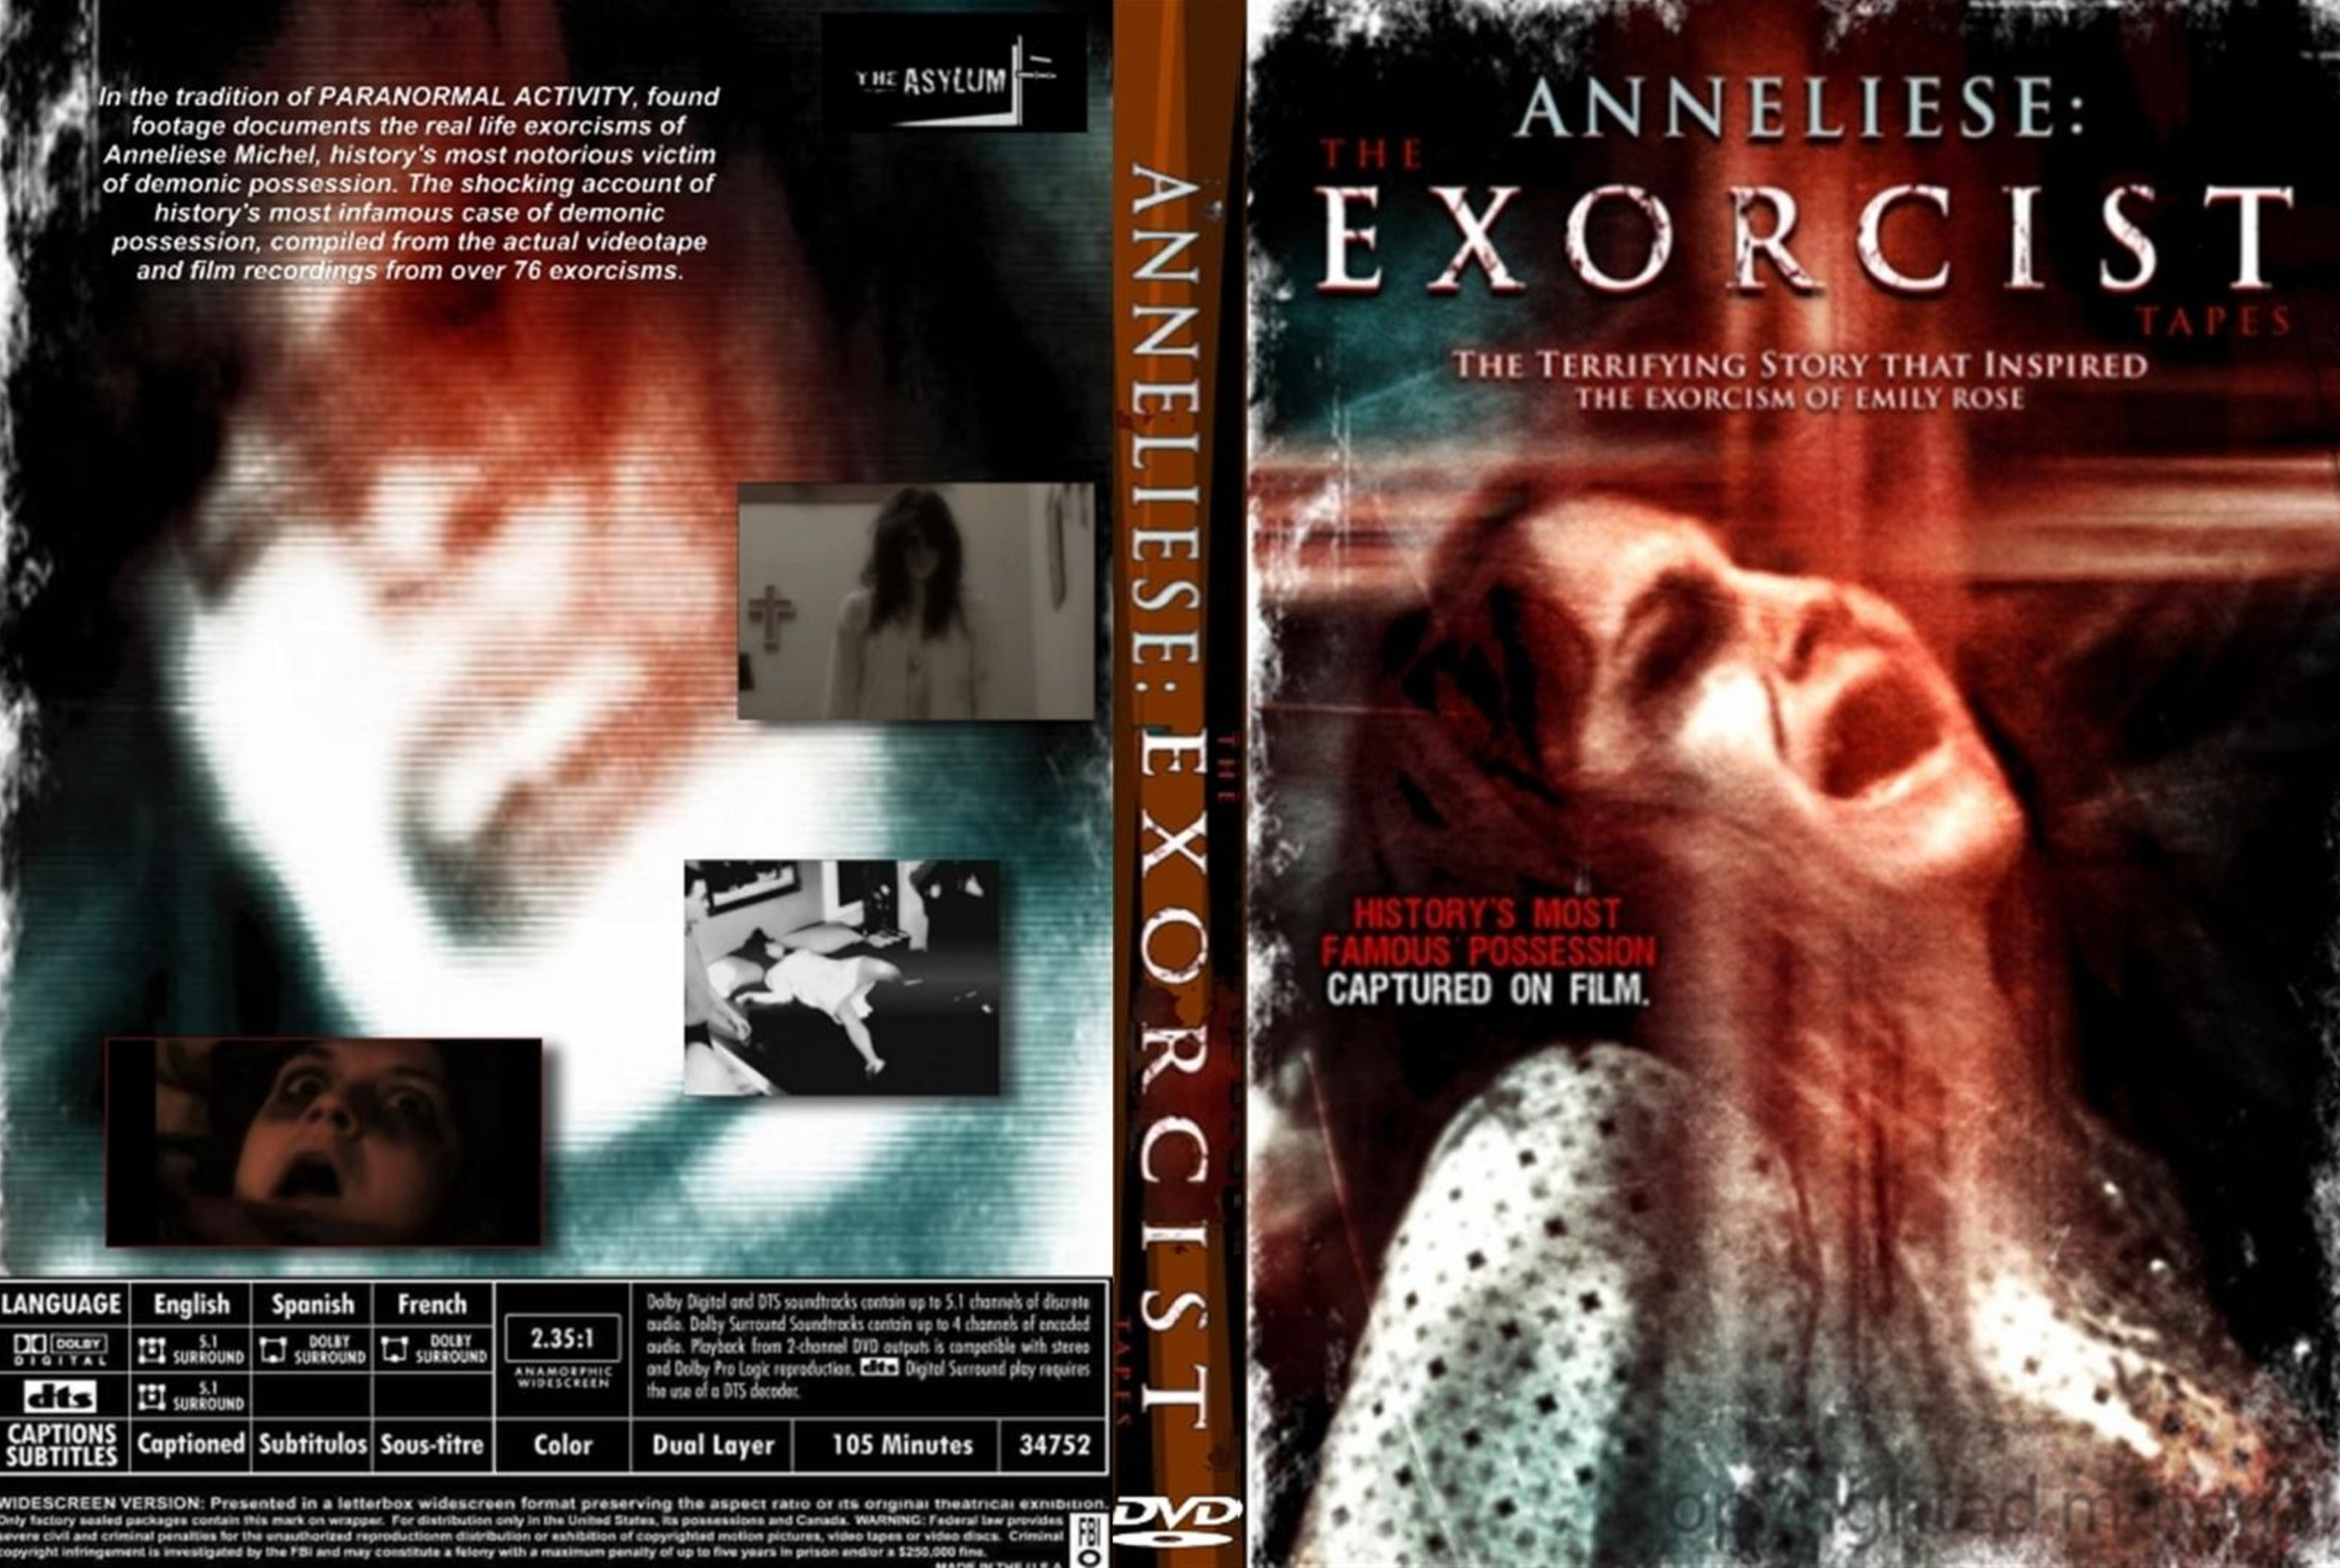 COVERS BOX SK ::: anneliese the exorcist tapes (2011) - high